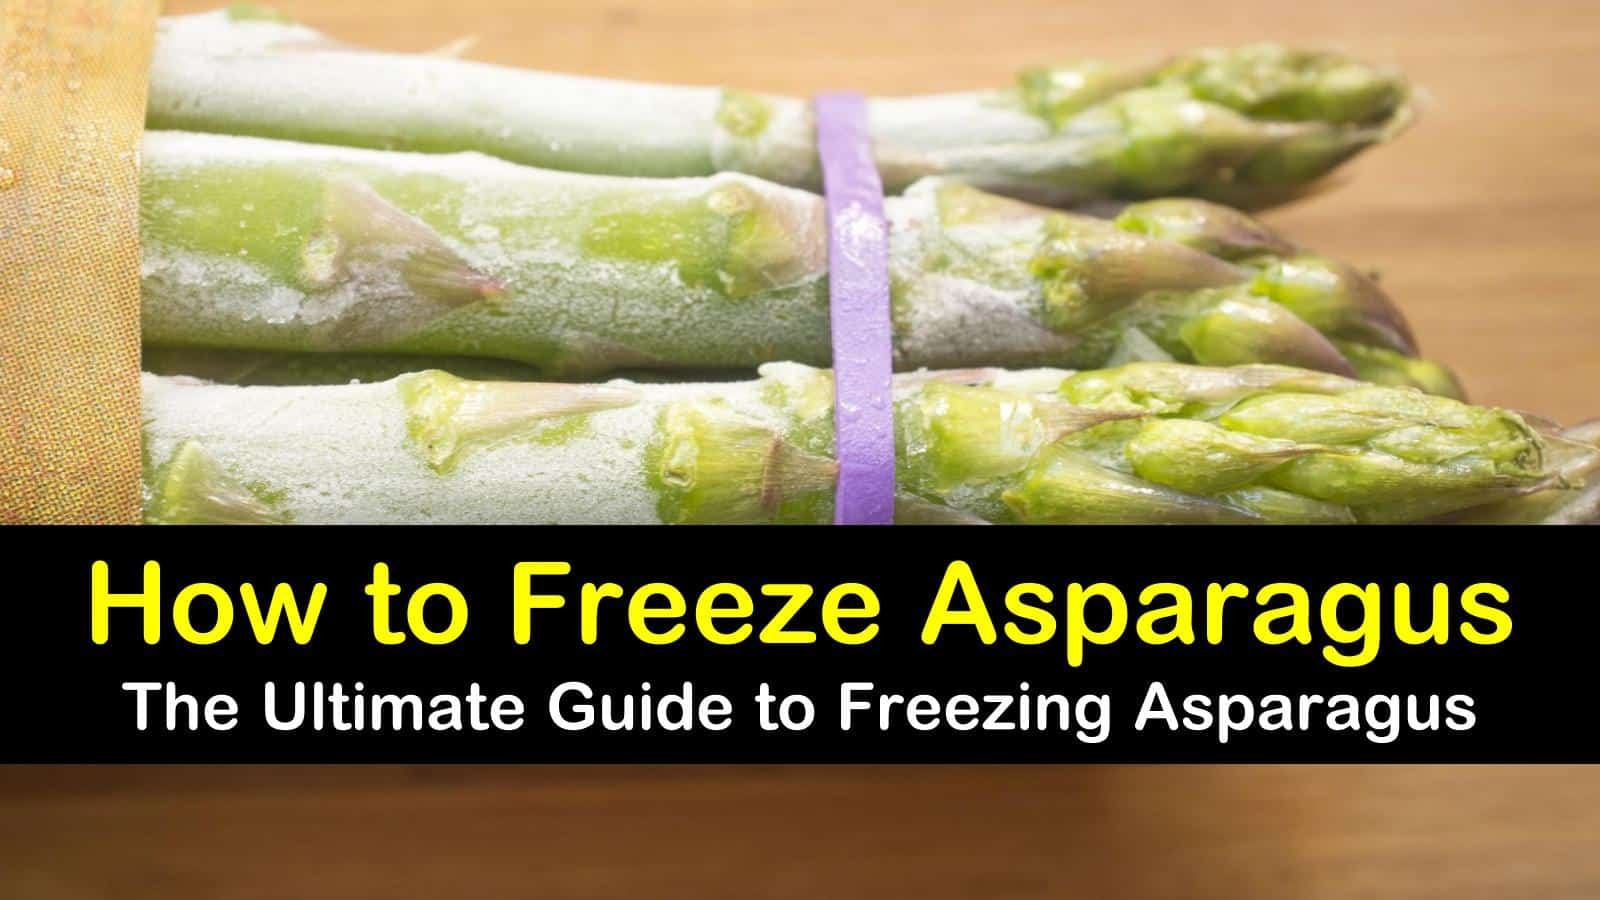 3 Reliable Ways To Freeze Asparagus